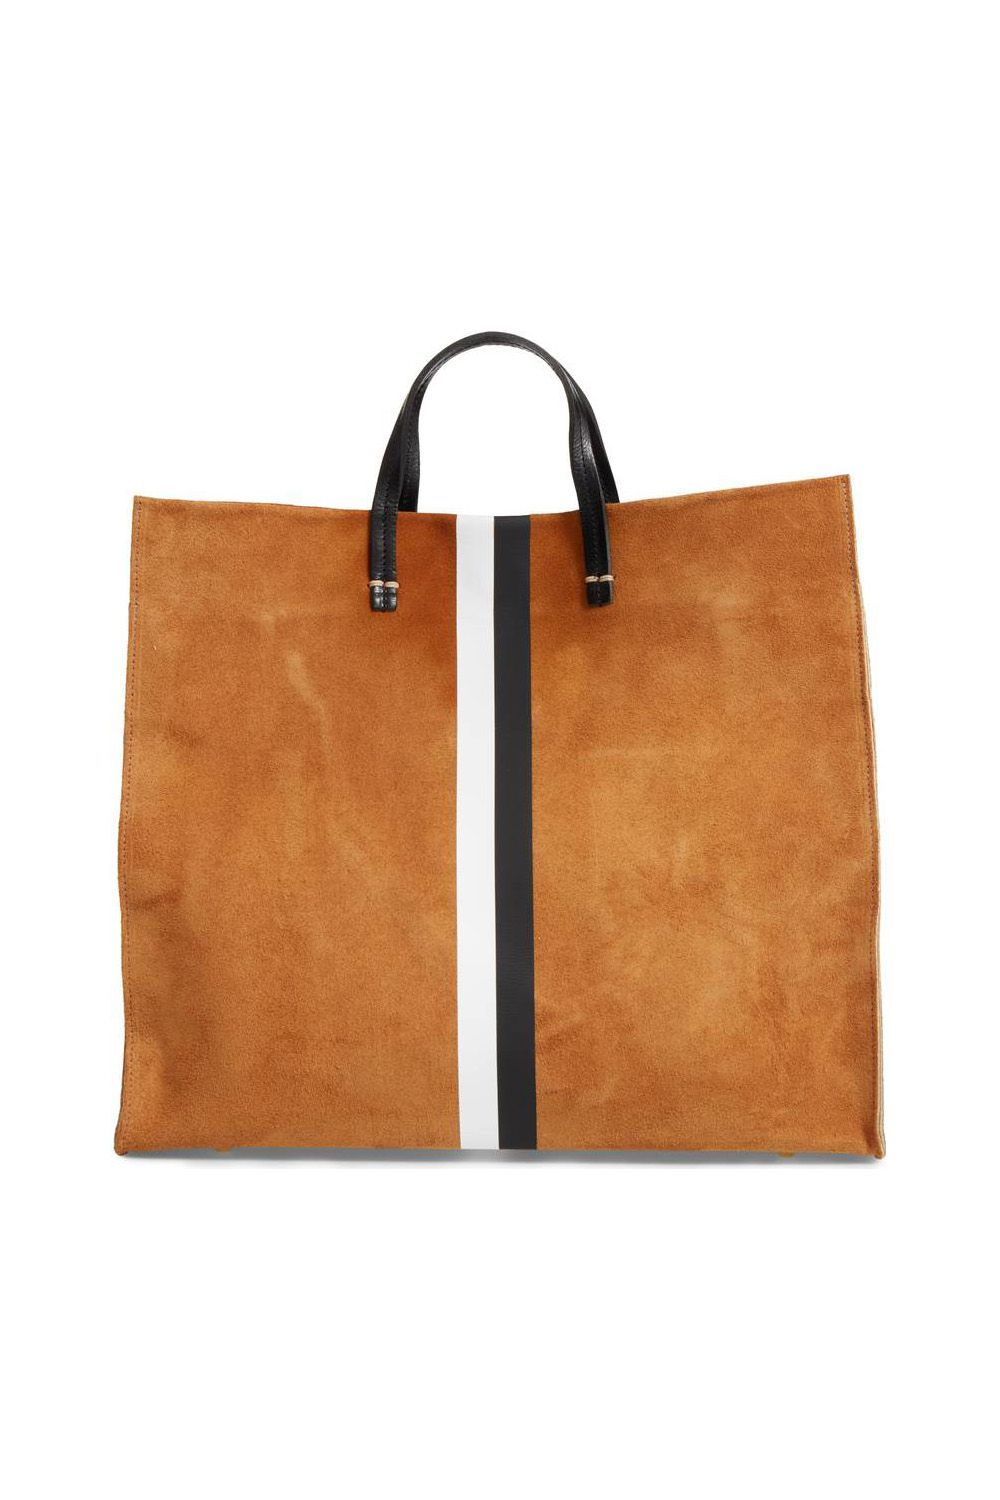 A Not-So-Basic Suede Shopper Clare V. Nordstrom $495.00 SHOP IT If this camel handbag isn't convincing you to swap out your tote for a luxe shopper-style, nothing will.